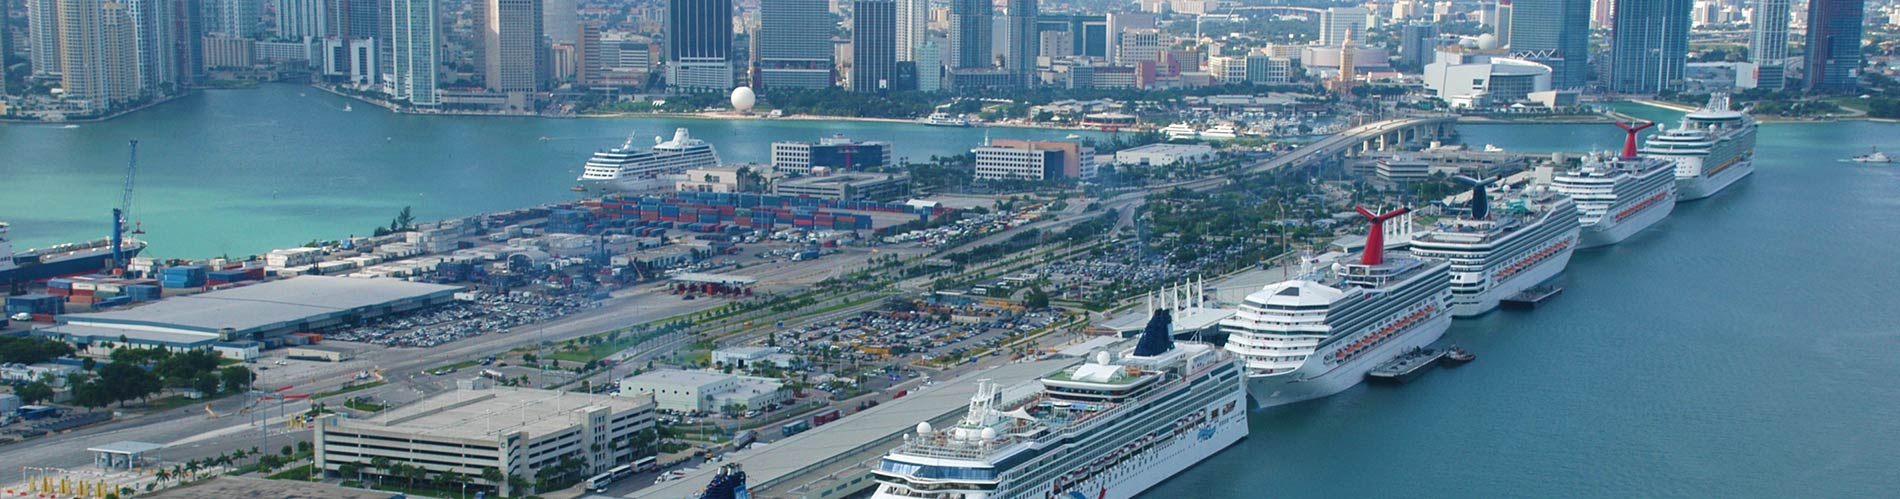 Miami Port Port Of Miami Cruiseshiphotels Fort Lauderdale